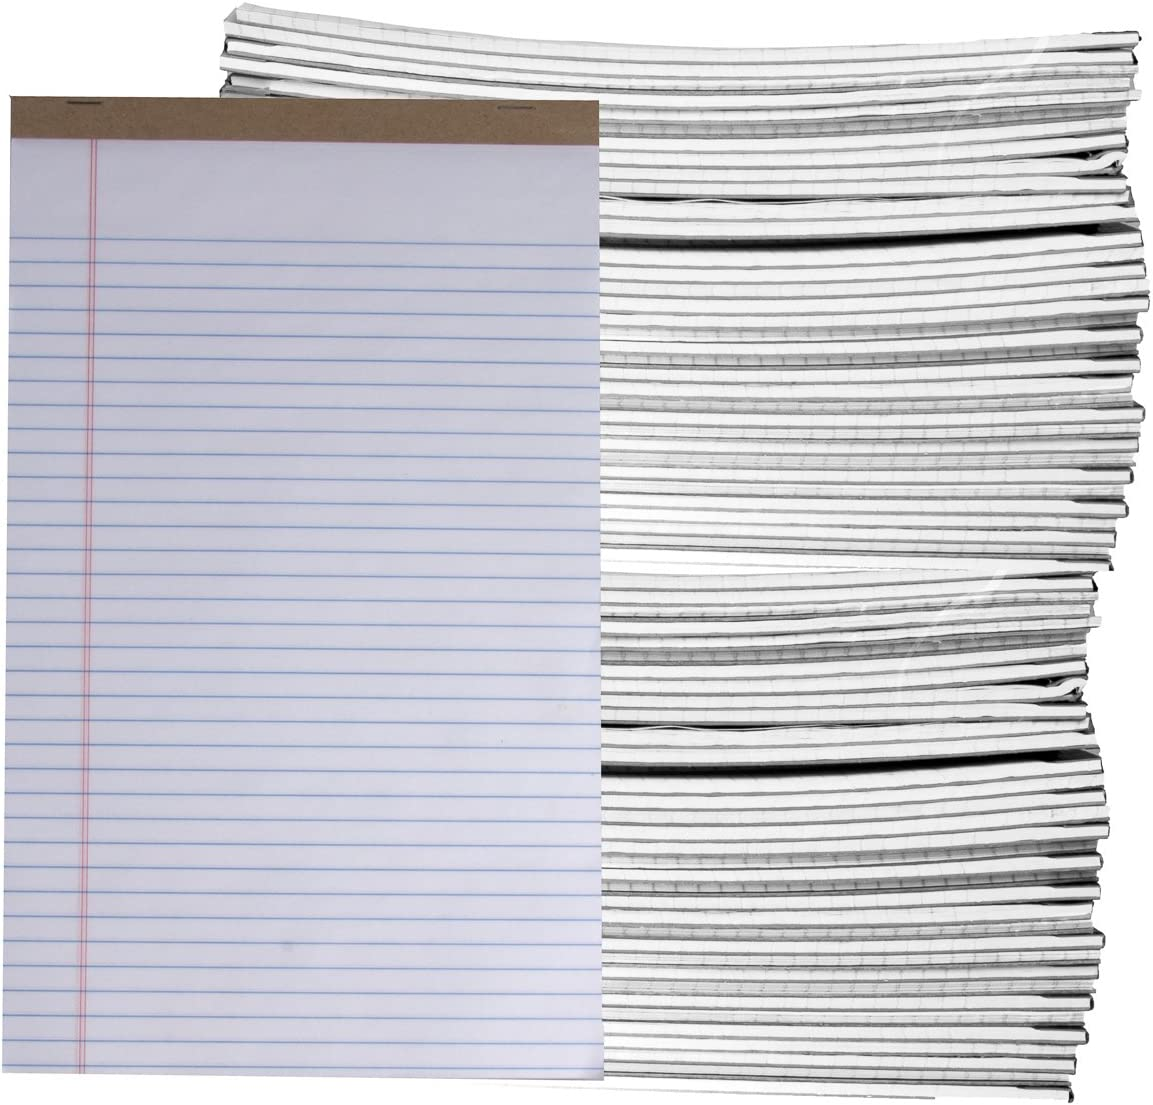 72 Count Assorted 50pg Legal Max 79% Cheap mail order sales OFF Pads Perforated x Pad Note 14 8.5